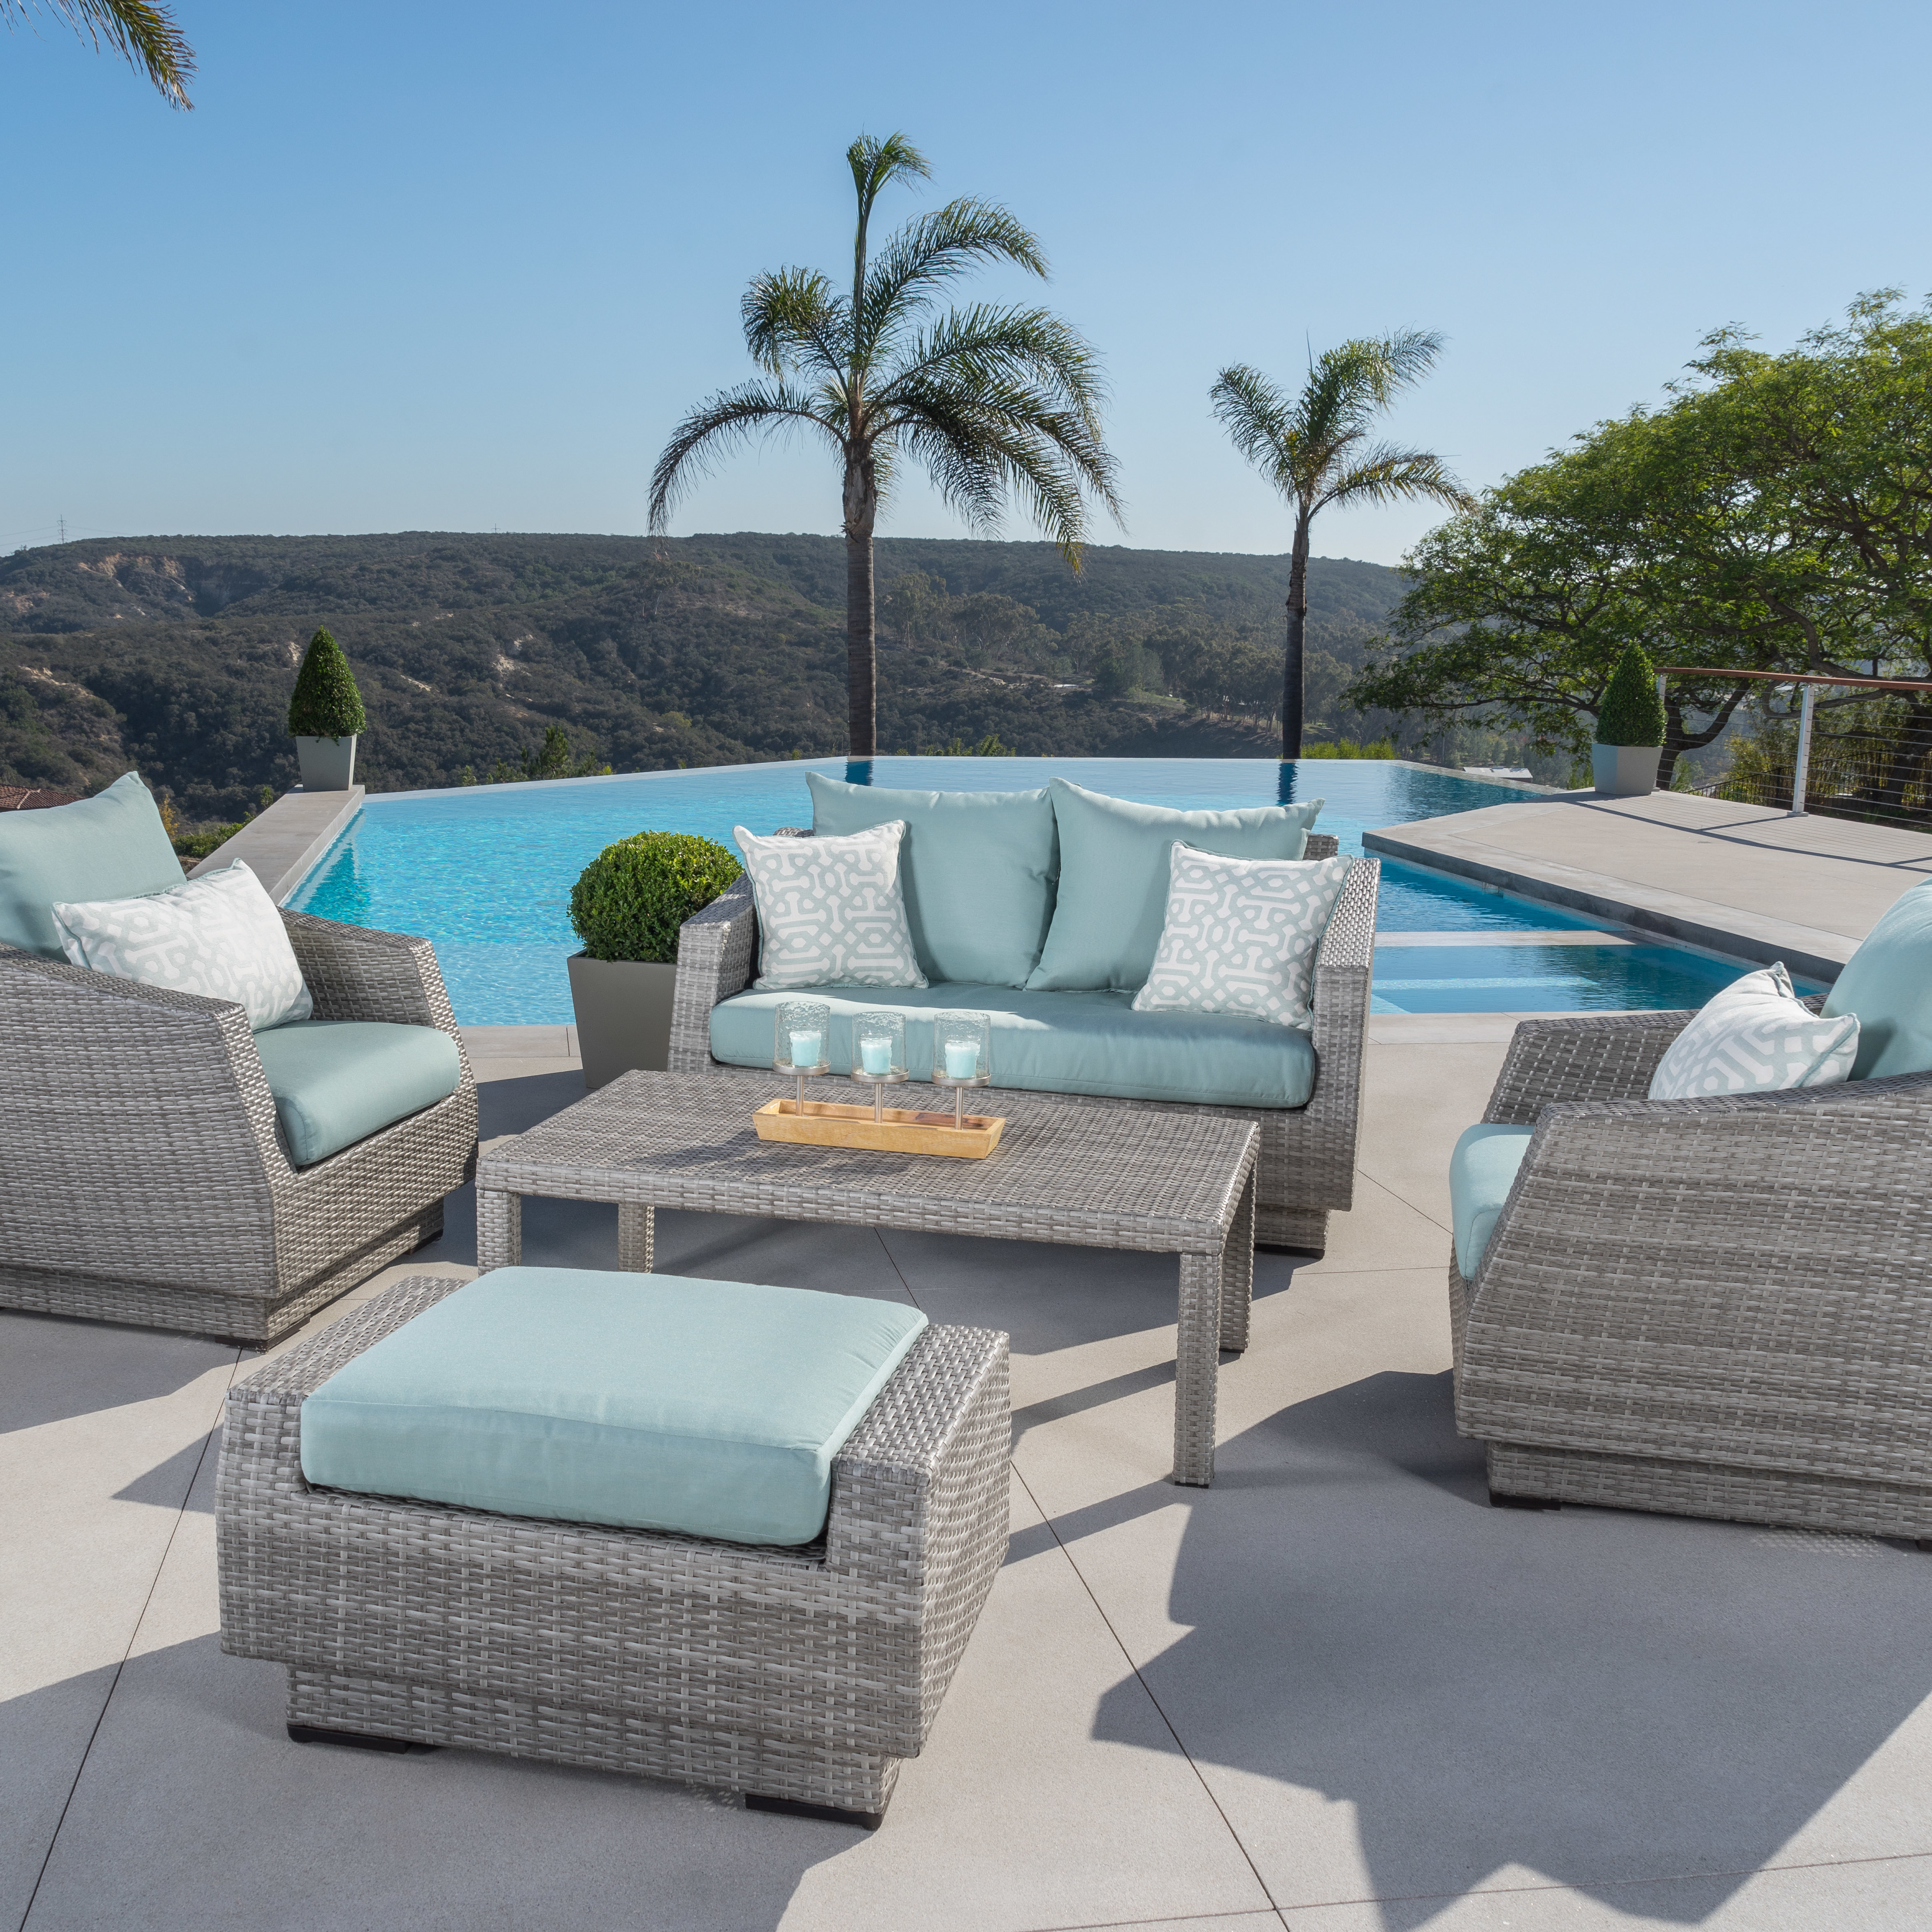 Castelli 5 Piece Sunbrella Sofa Set With Cushions With Regard To Most Popular Castelli Patio Sofas With Sunbrella Cushions (View 3 of 20)